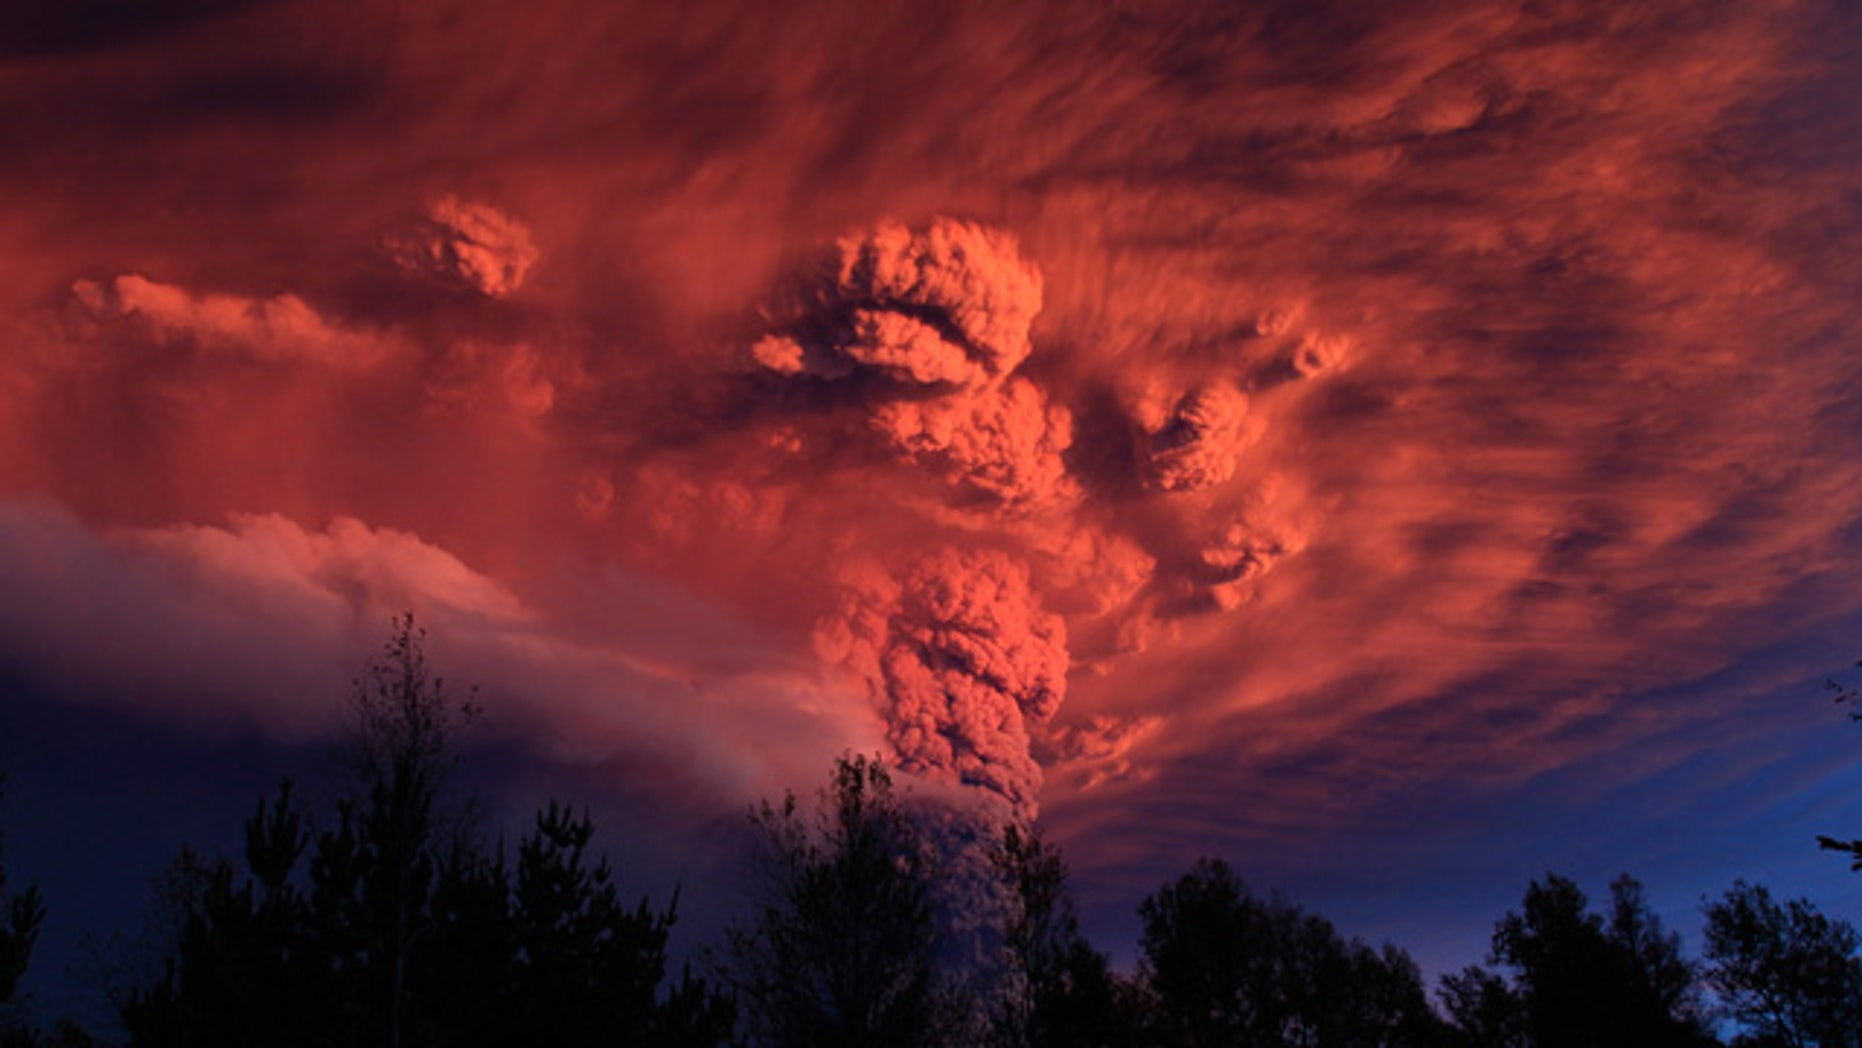 June 4, 2011: A plume of ash, estimated six miles high and three mile wide is seen after a volcano erupted in the Puyehue-Cordon Caulle volcanic chain, about 575 miles south of the capital, Santiago.